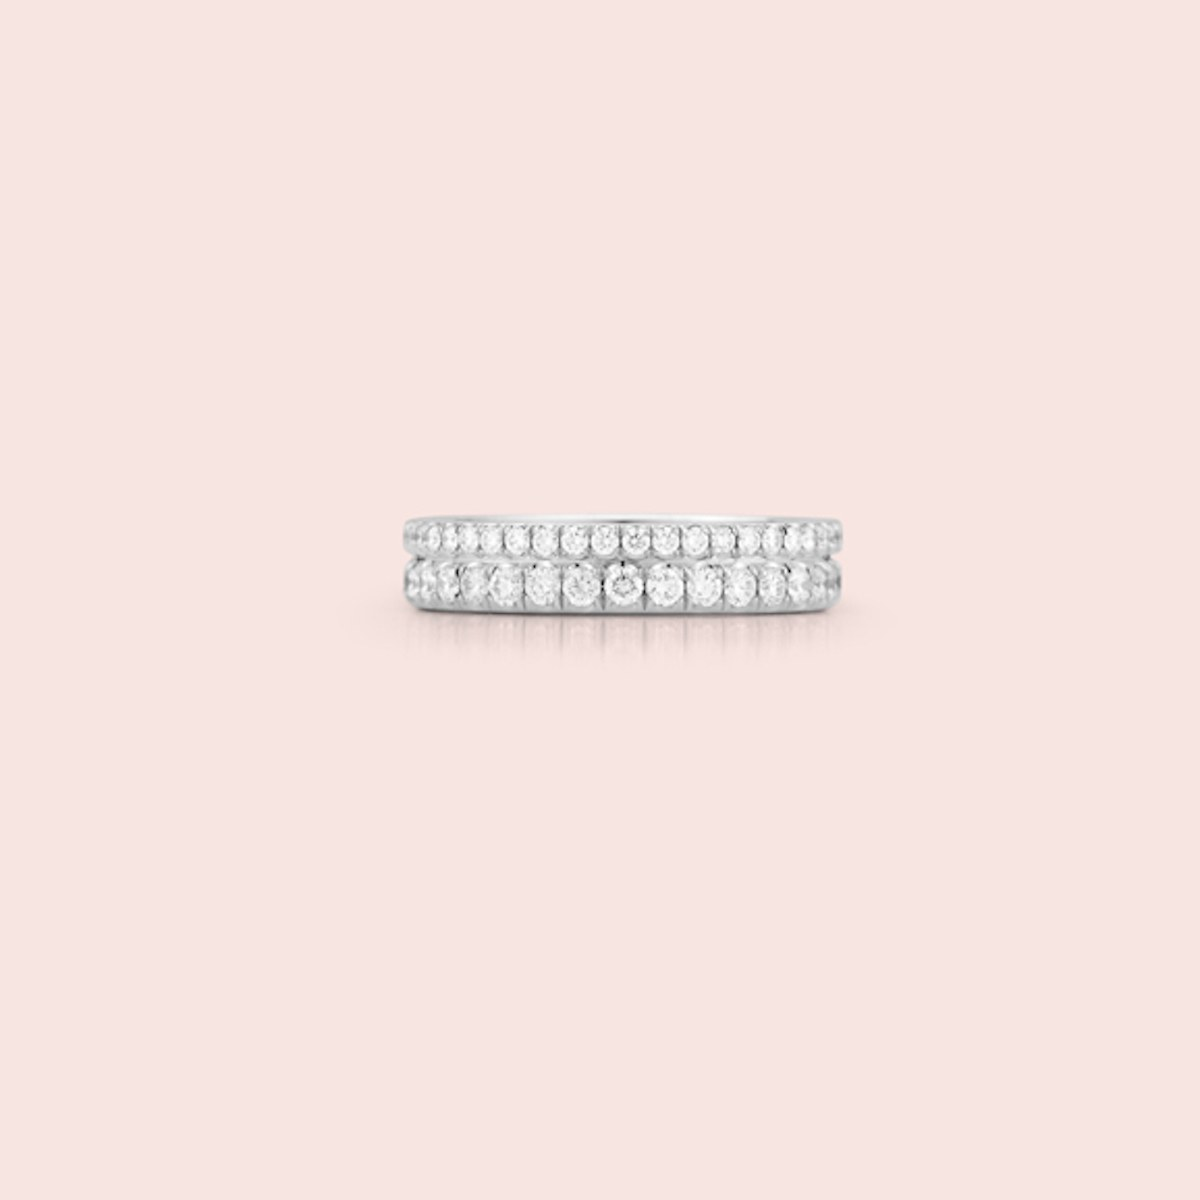 Prive-Luxe-Double-Pave-Diamond-Band-Ring-7350-Jemma-Wynne.jpg